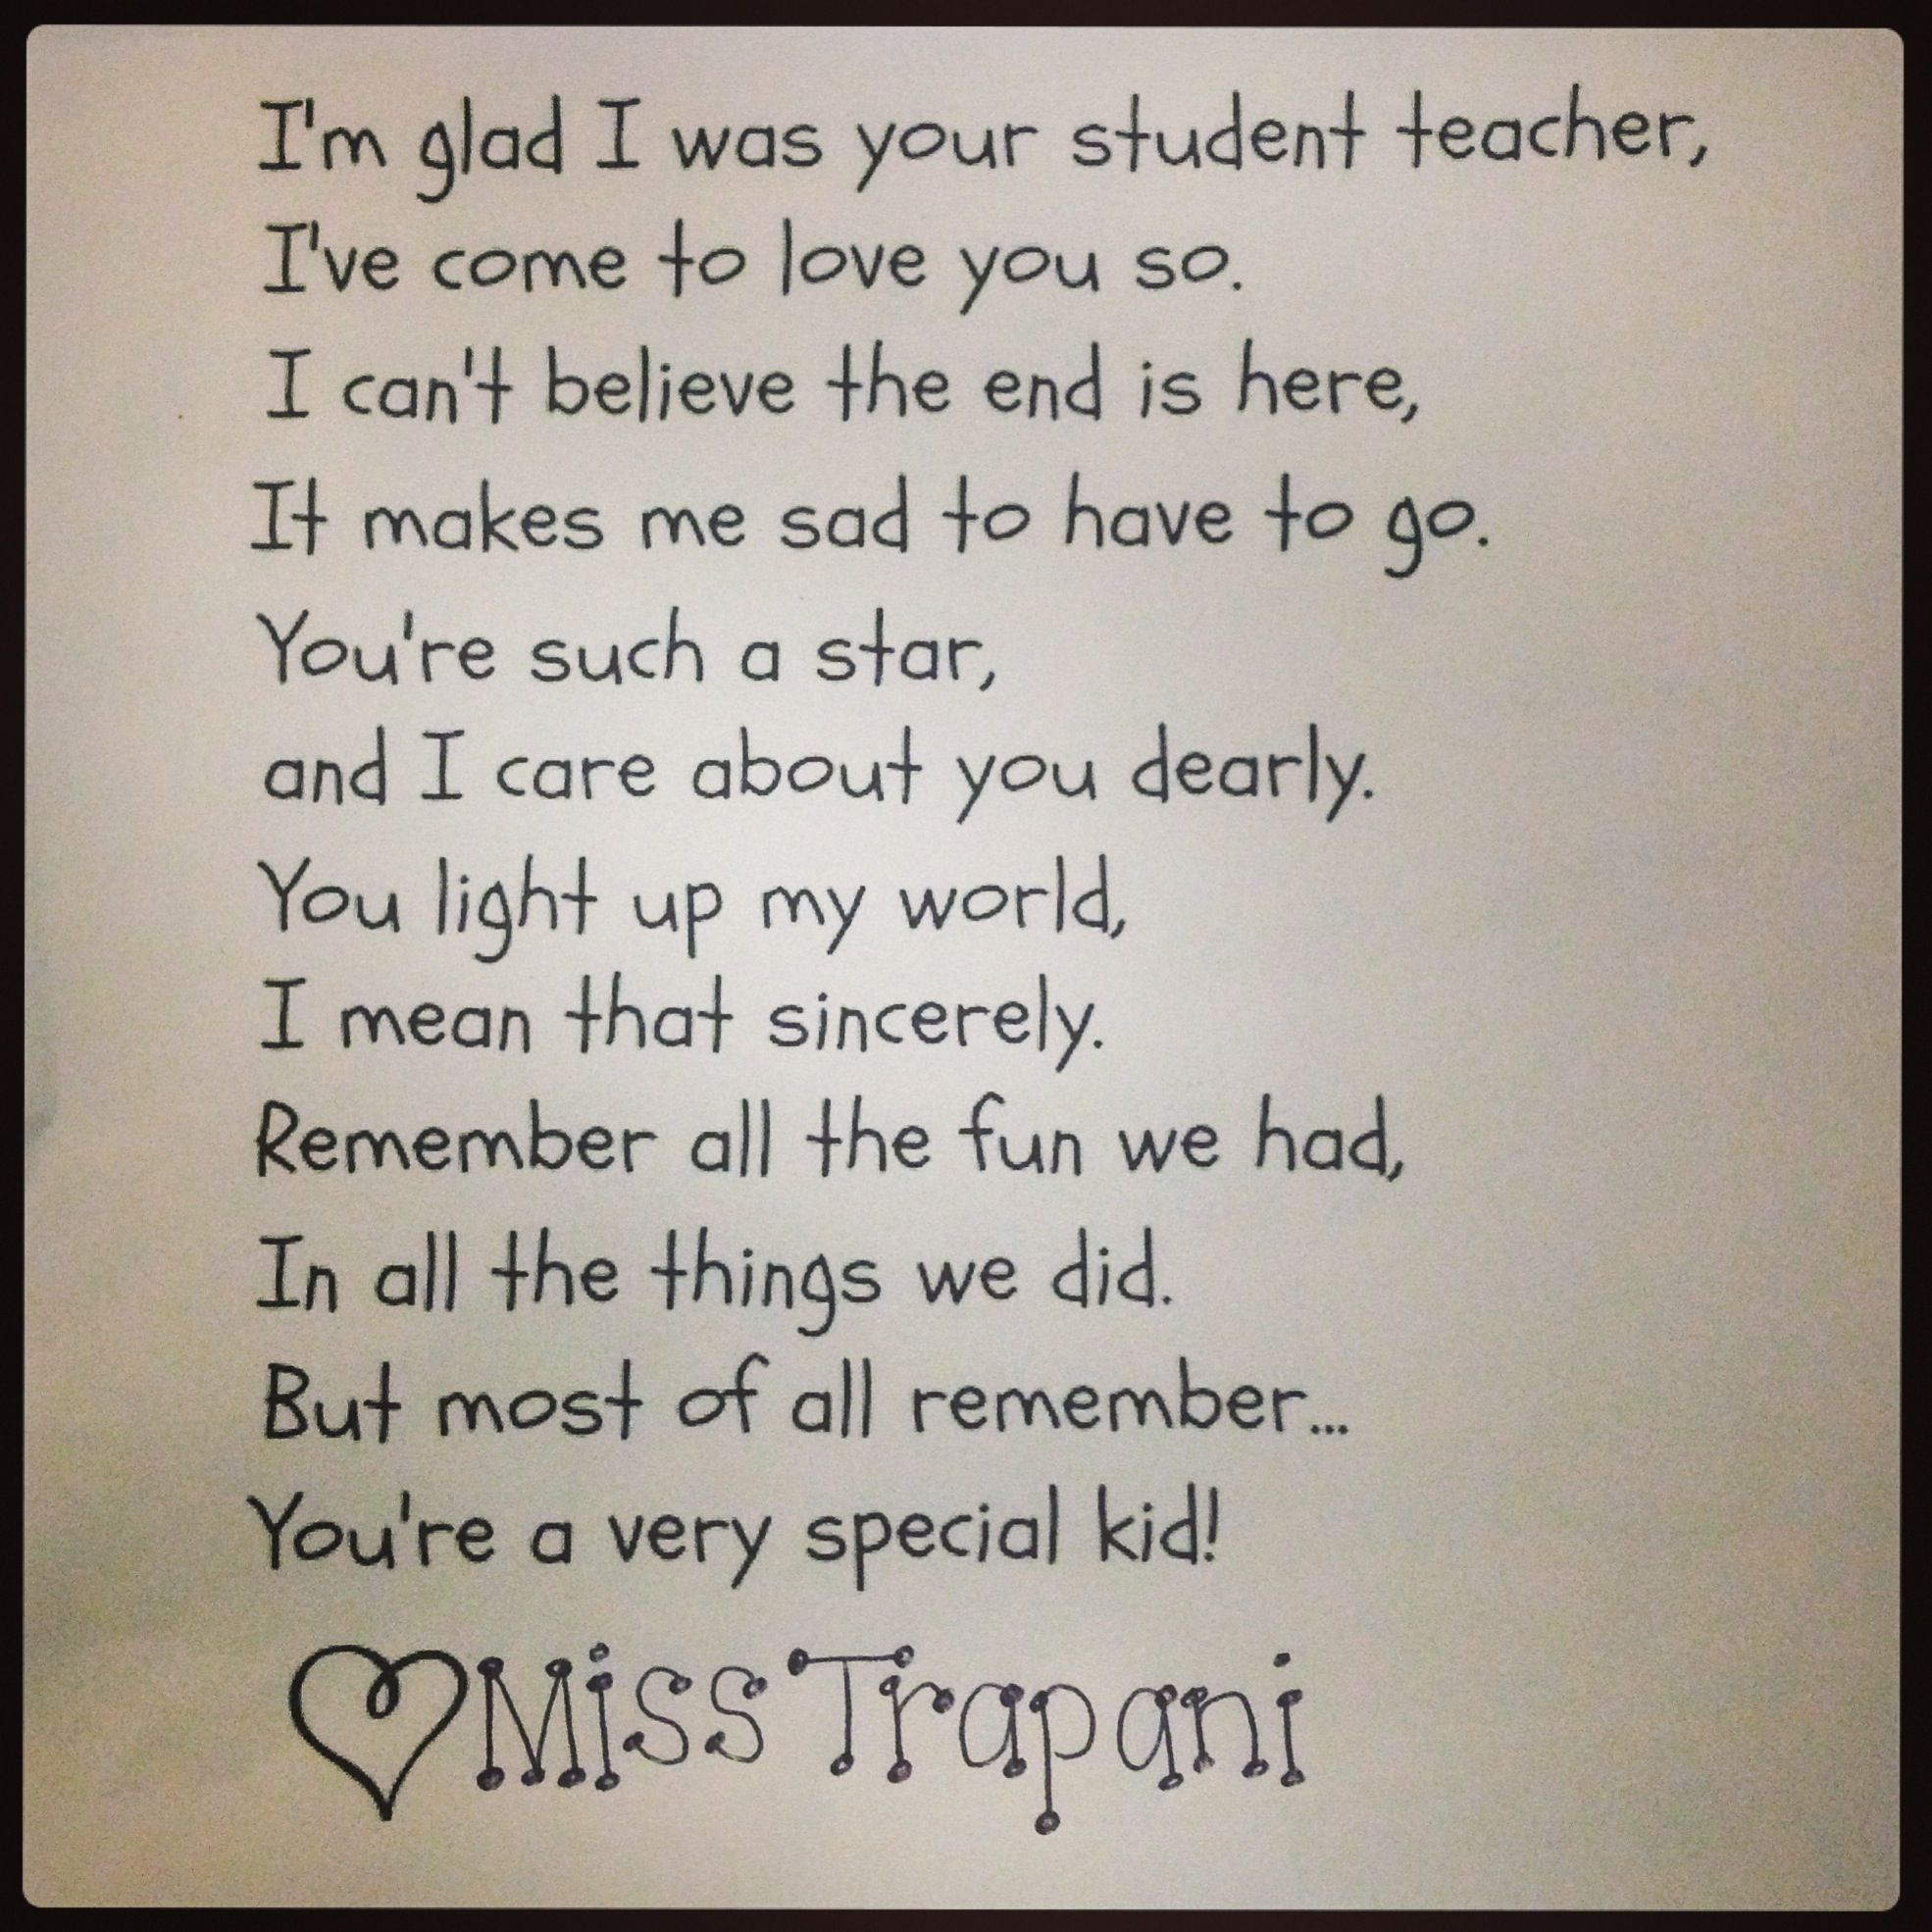 A Cute Poem To Give To Your Students As A Student Teacher  Gift